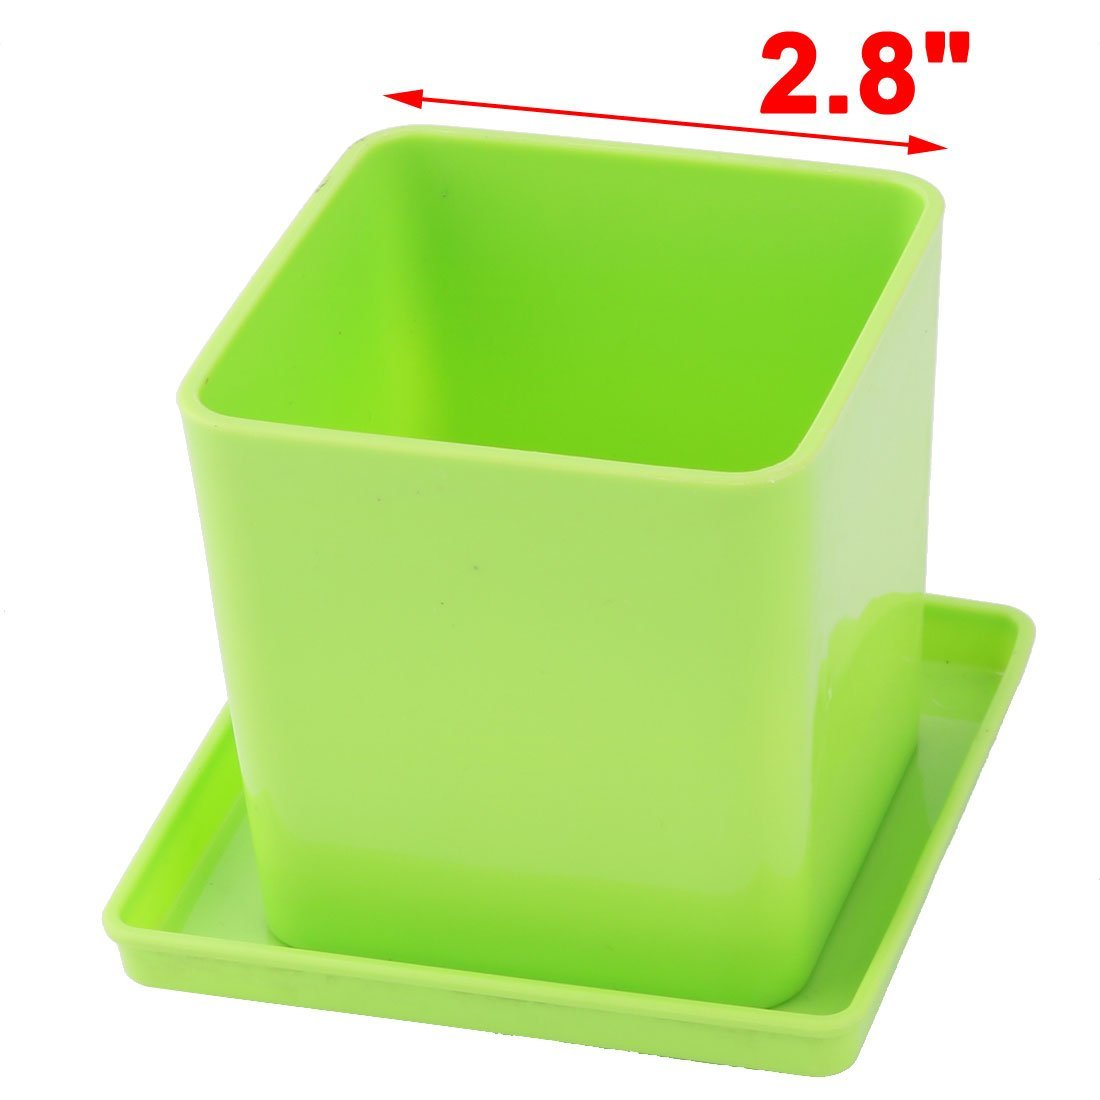 Amazon.com: Titular DealMux plástico Início Square Garden Rose Pot Plant Flower Tray 2,8 polegadas Altura Verde: Home & Kitchen